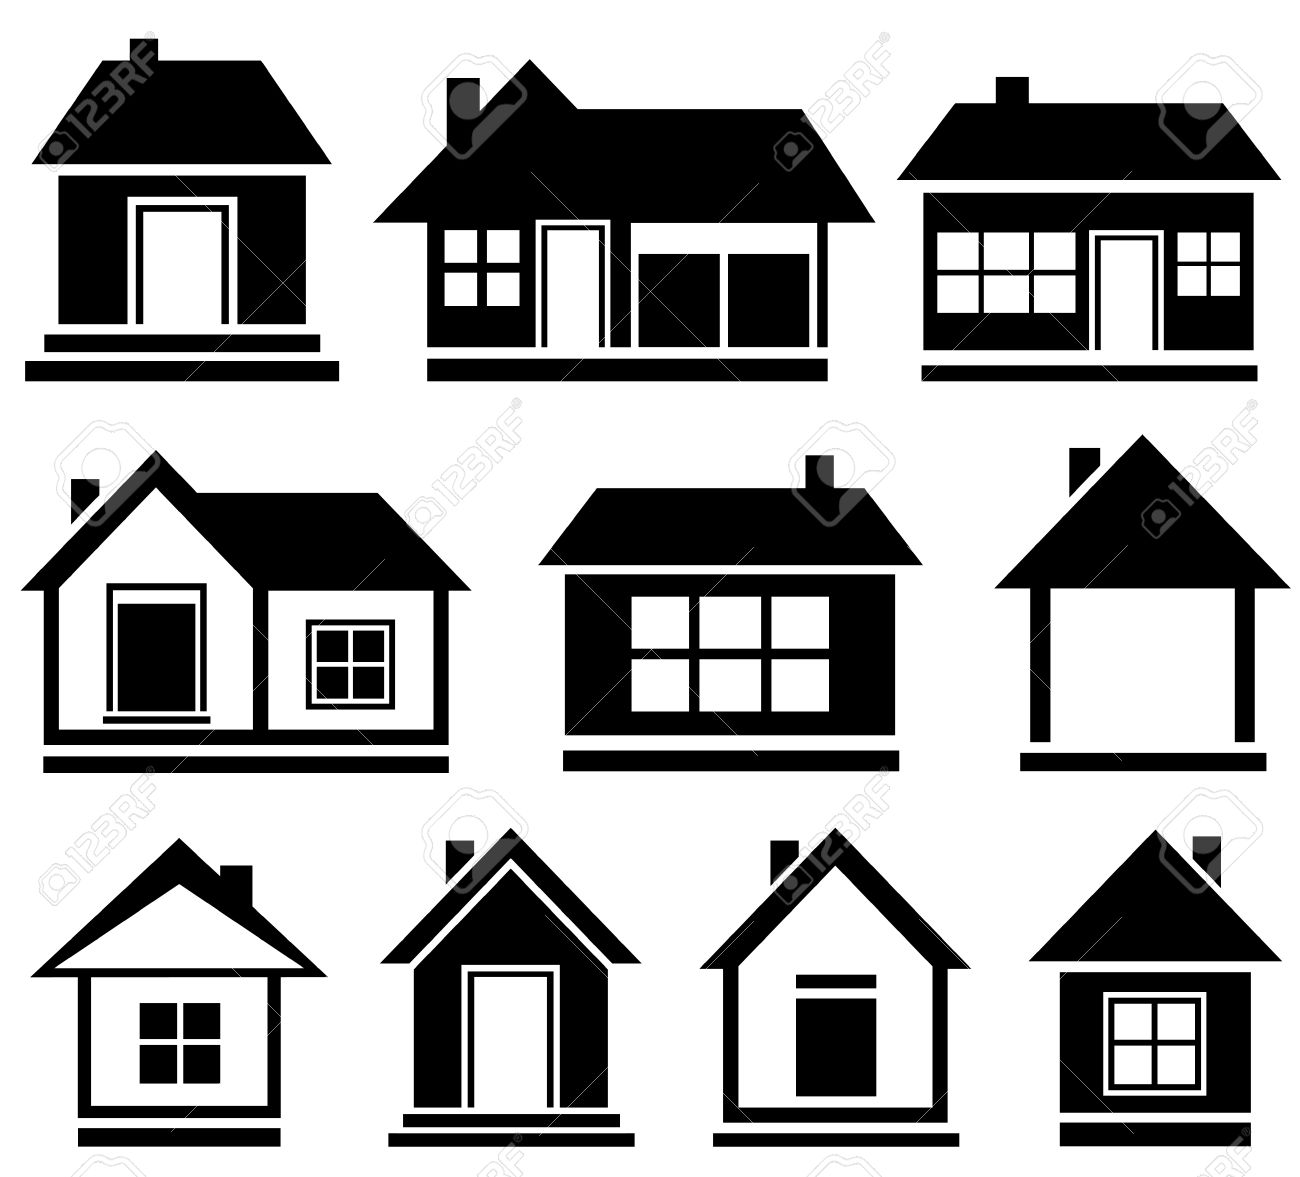 set cottage icons black isolated house silhouette royalty free rh 123rf com old house silhouette vector tree house silhouette vector